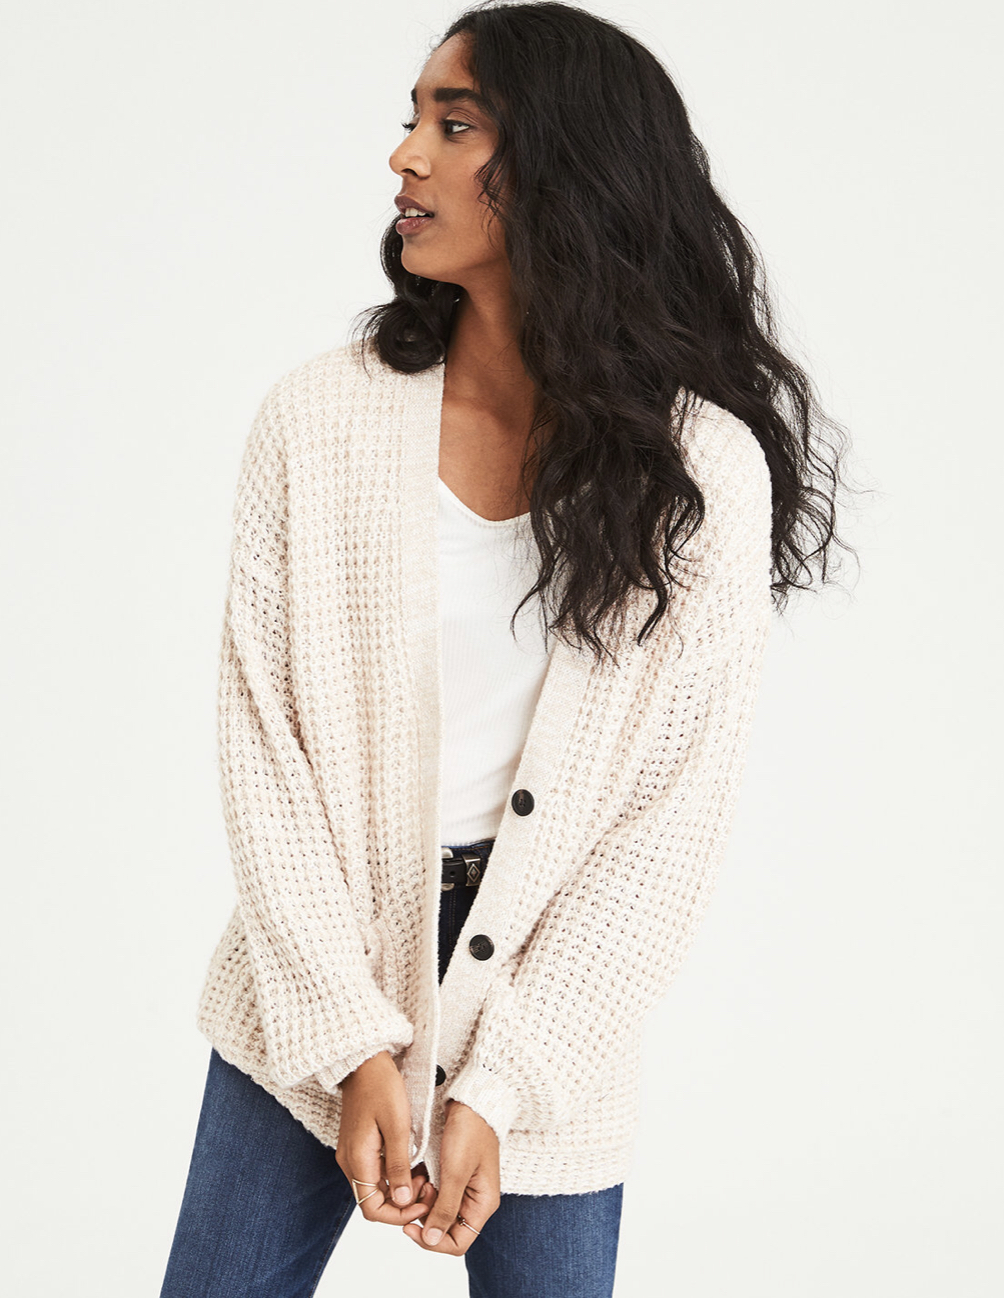 Who doesn't love a good cardigan? - Over $100 at Madewell, AE dupe around $35!